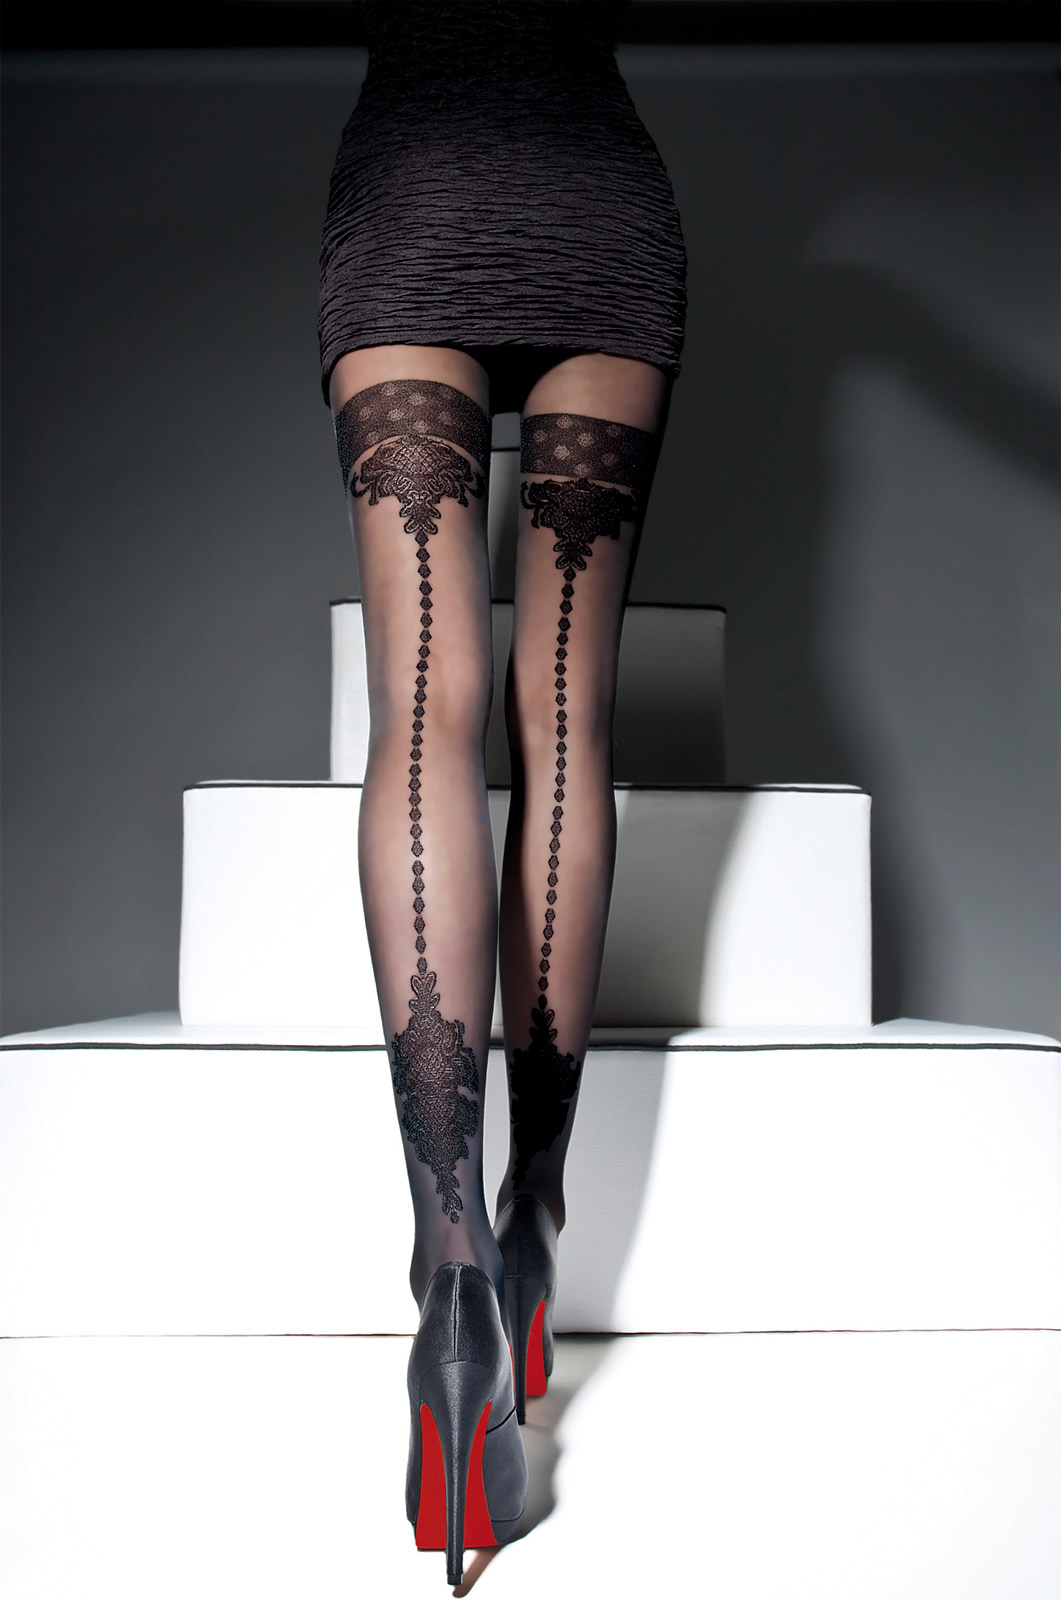 Fiore - Patterned Tights Apriel Black